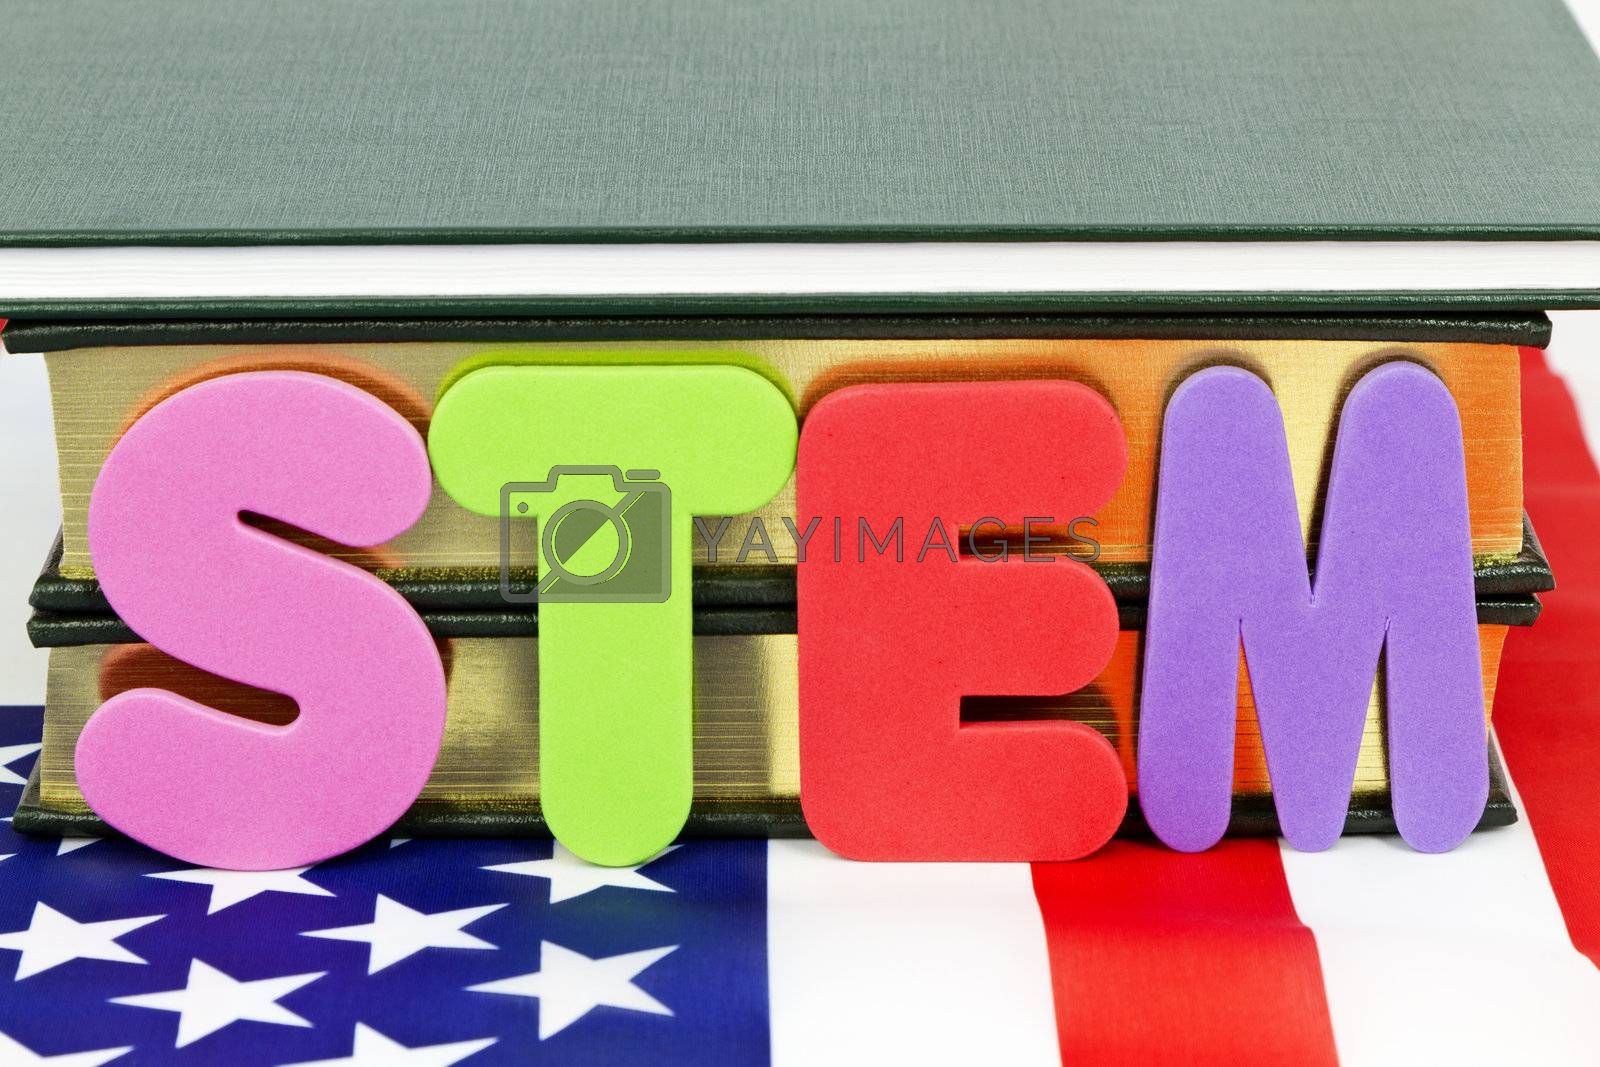 Popular designation of STEM education (Science, Technology, Engineering, and Mathematics) references life and career-ready skills for 21st century success. Letters S,T, E, M, placed before books and on American flag.